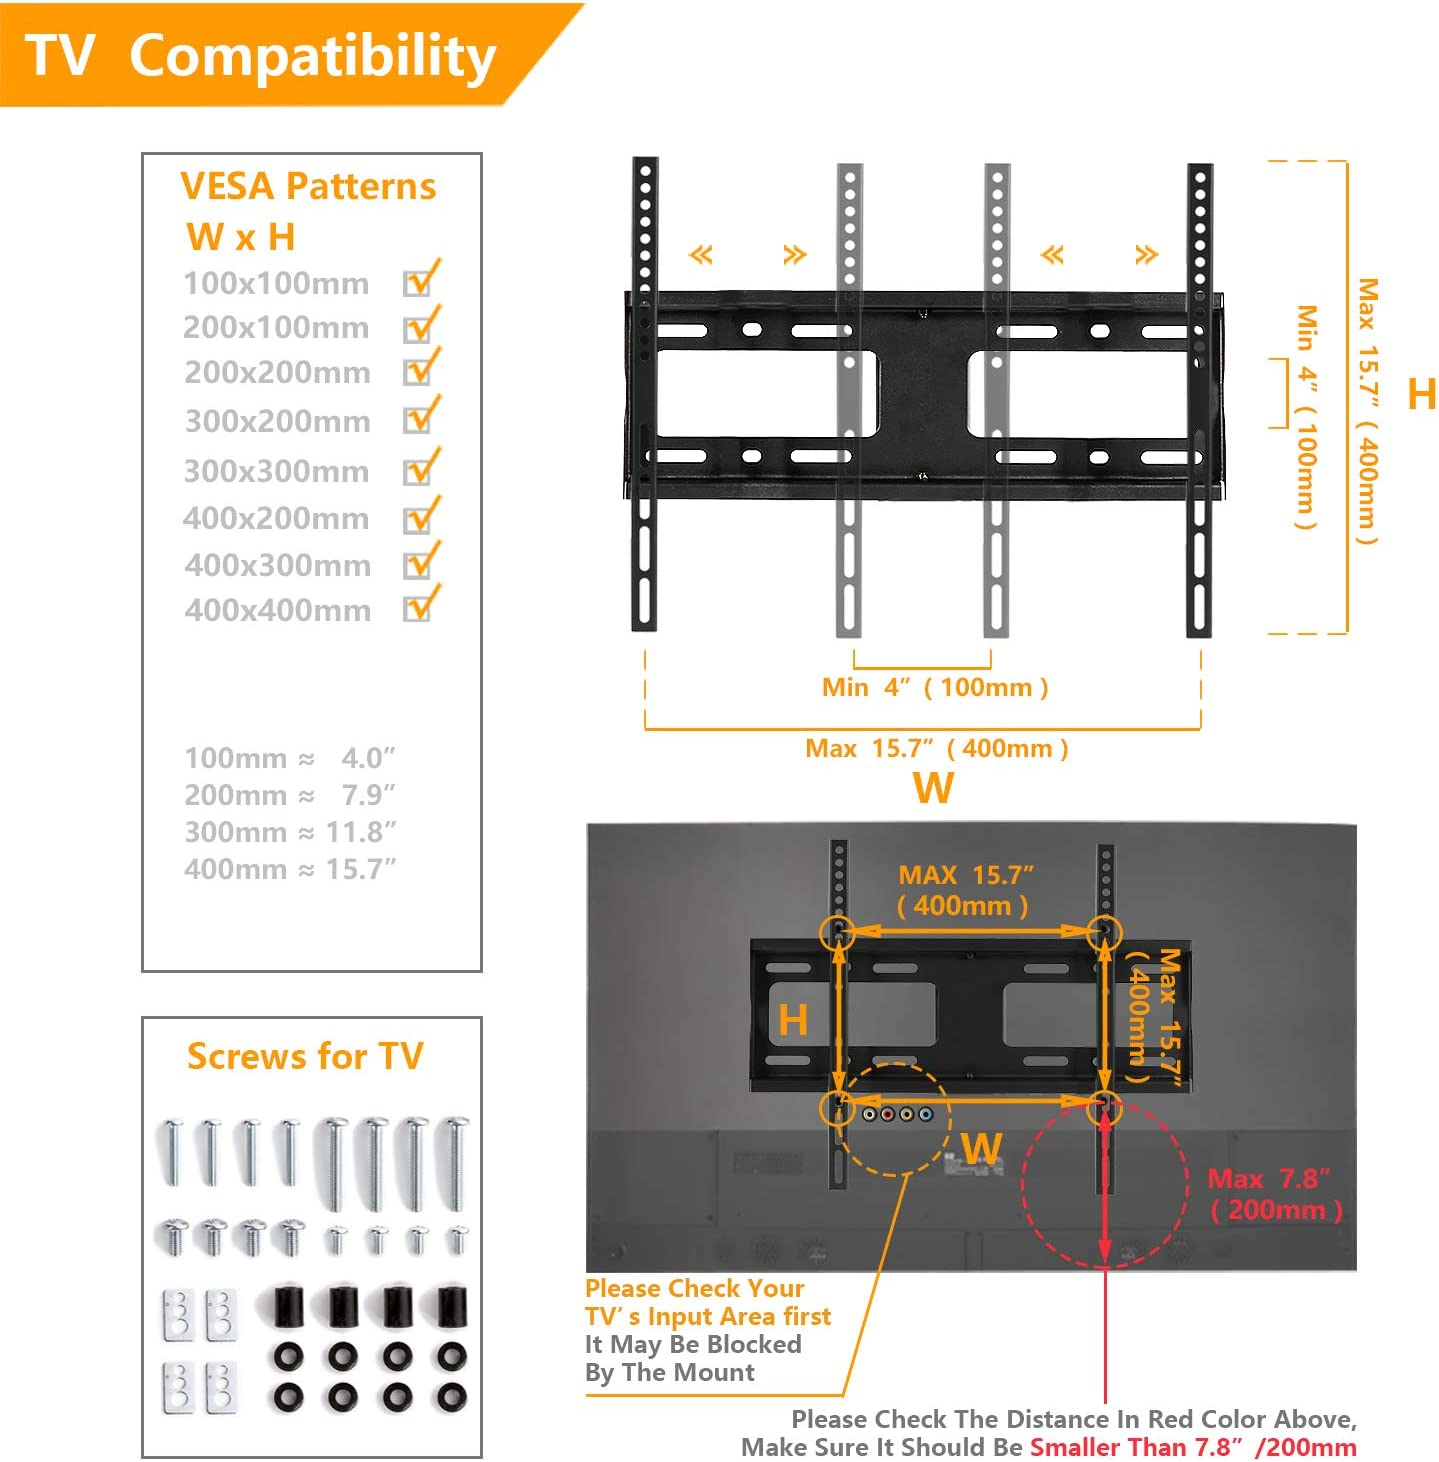 5Rcom Universal Swivel Tabletop TV Stand Base with Mount for 27 32 37 40 42 46 50 55 inch LCD LED Plasma Flat Screens, Height Adjustable TV Base Replacement,Tempered Glass Base,Holds up to 88lbs